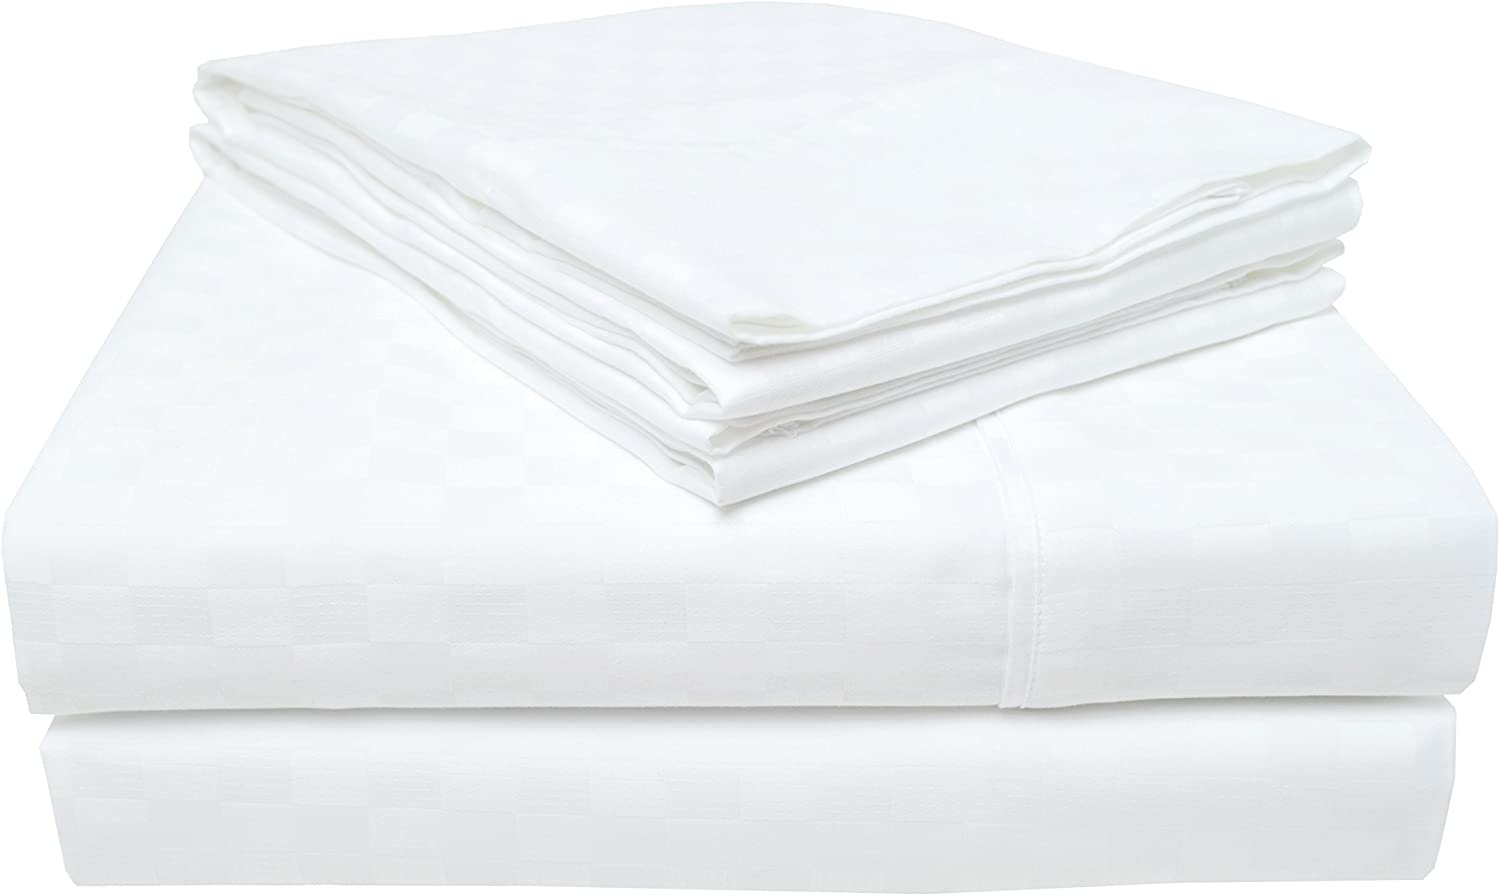 Superior 100% Cotton, 300 Thread Count Checkered Bed Sheet Set, King, White